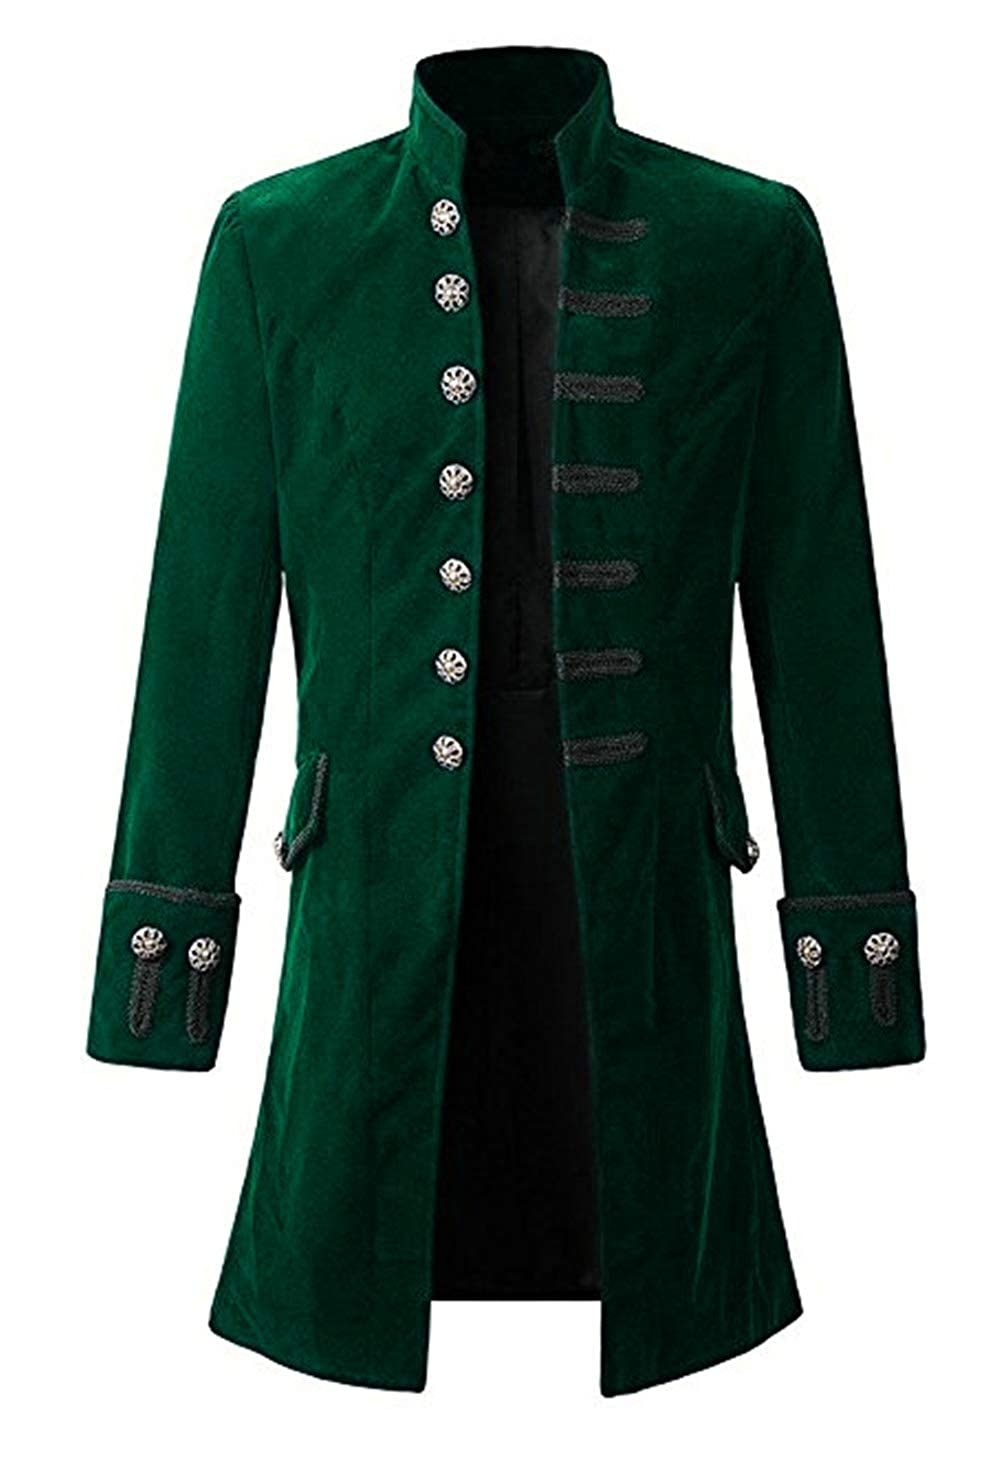 f1f023b2e920 Men's Dark Green Big and Tall Long Velvet Pirate Coat -  DeluxeAdultCostumes.com